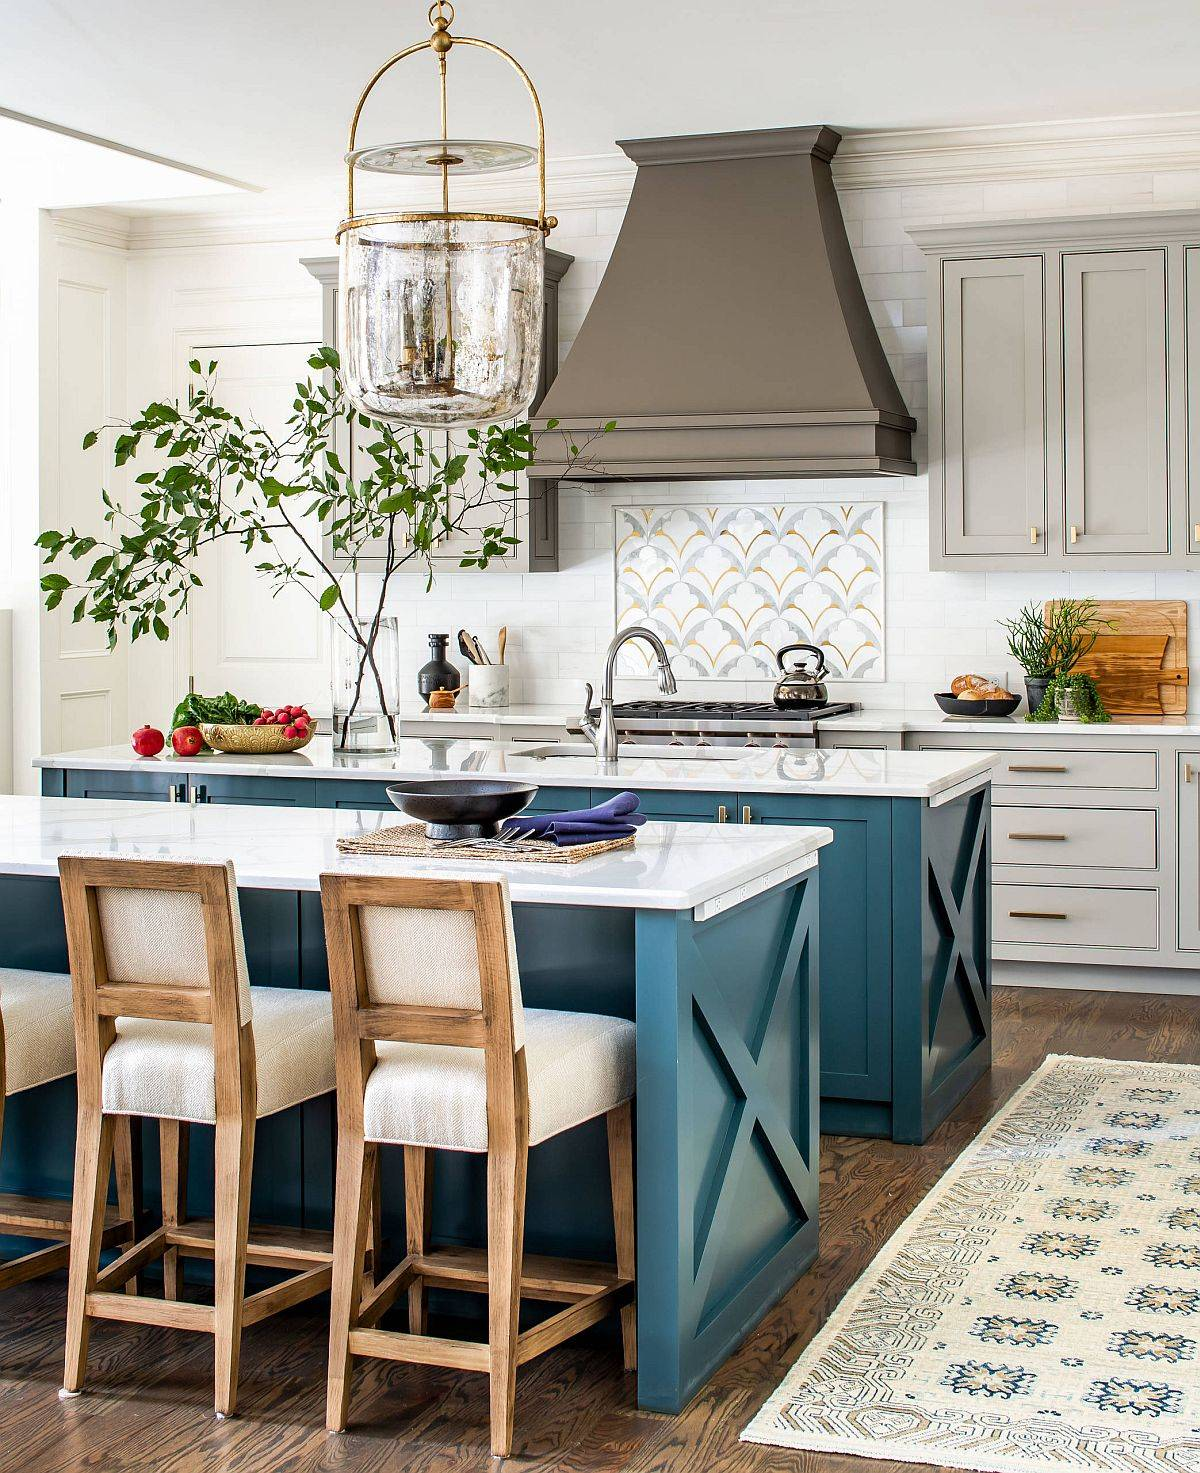 Gorgeous-teal-cabinets-steal-the-show-in-this-bright-modern-kitchen-with-summery-vibe-64359